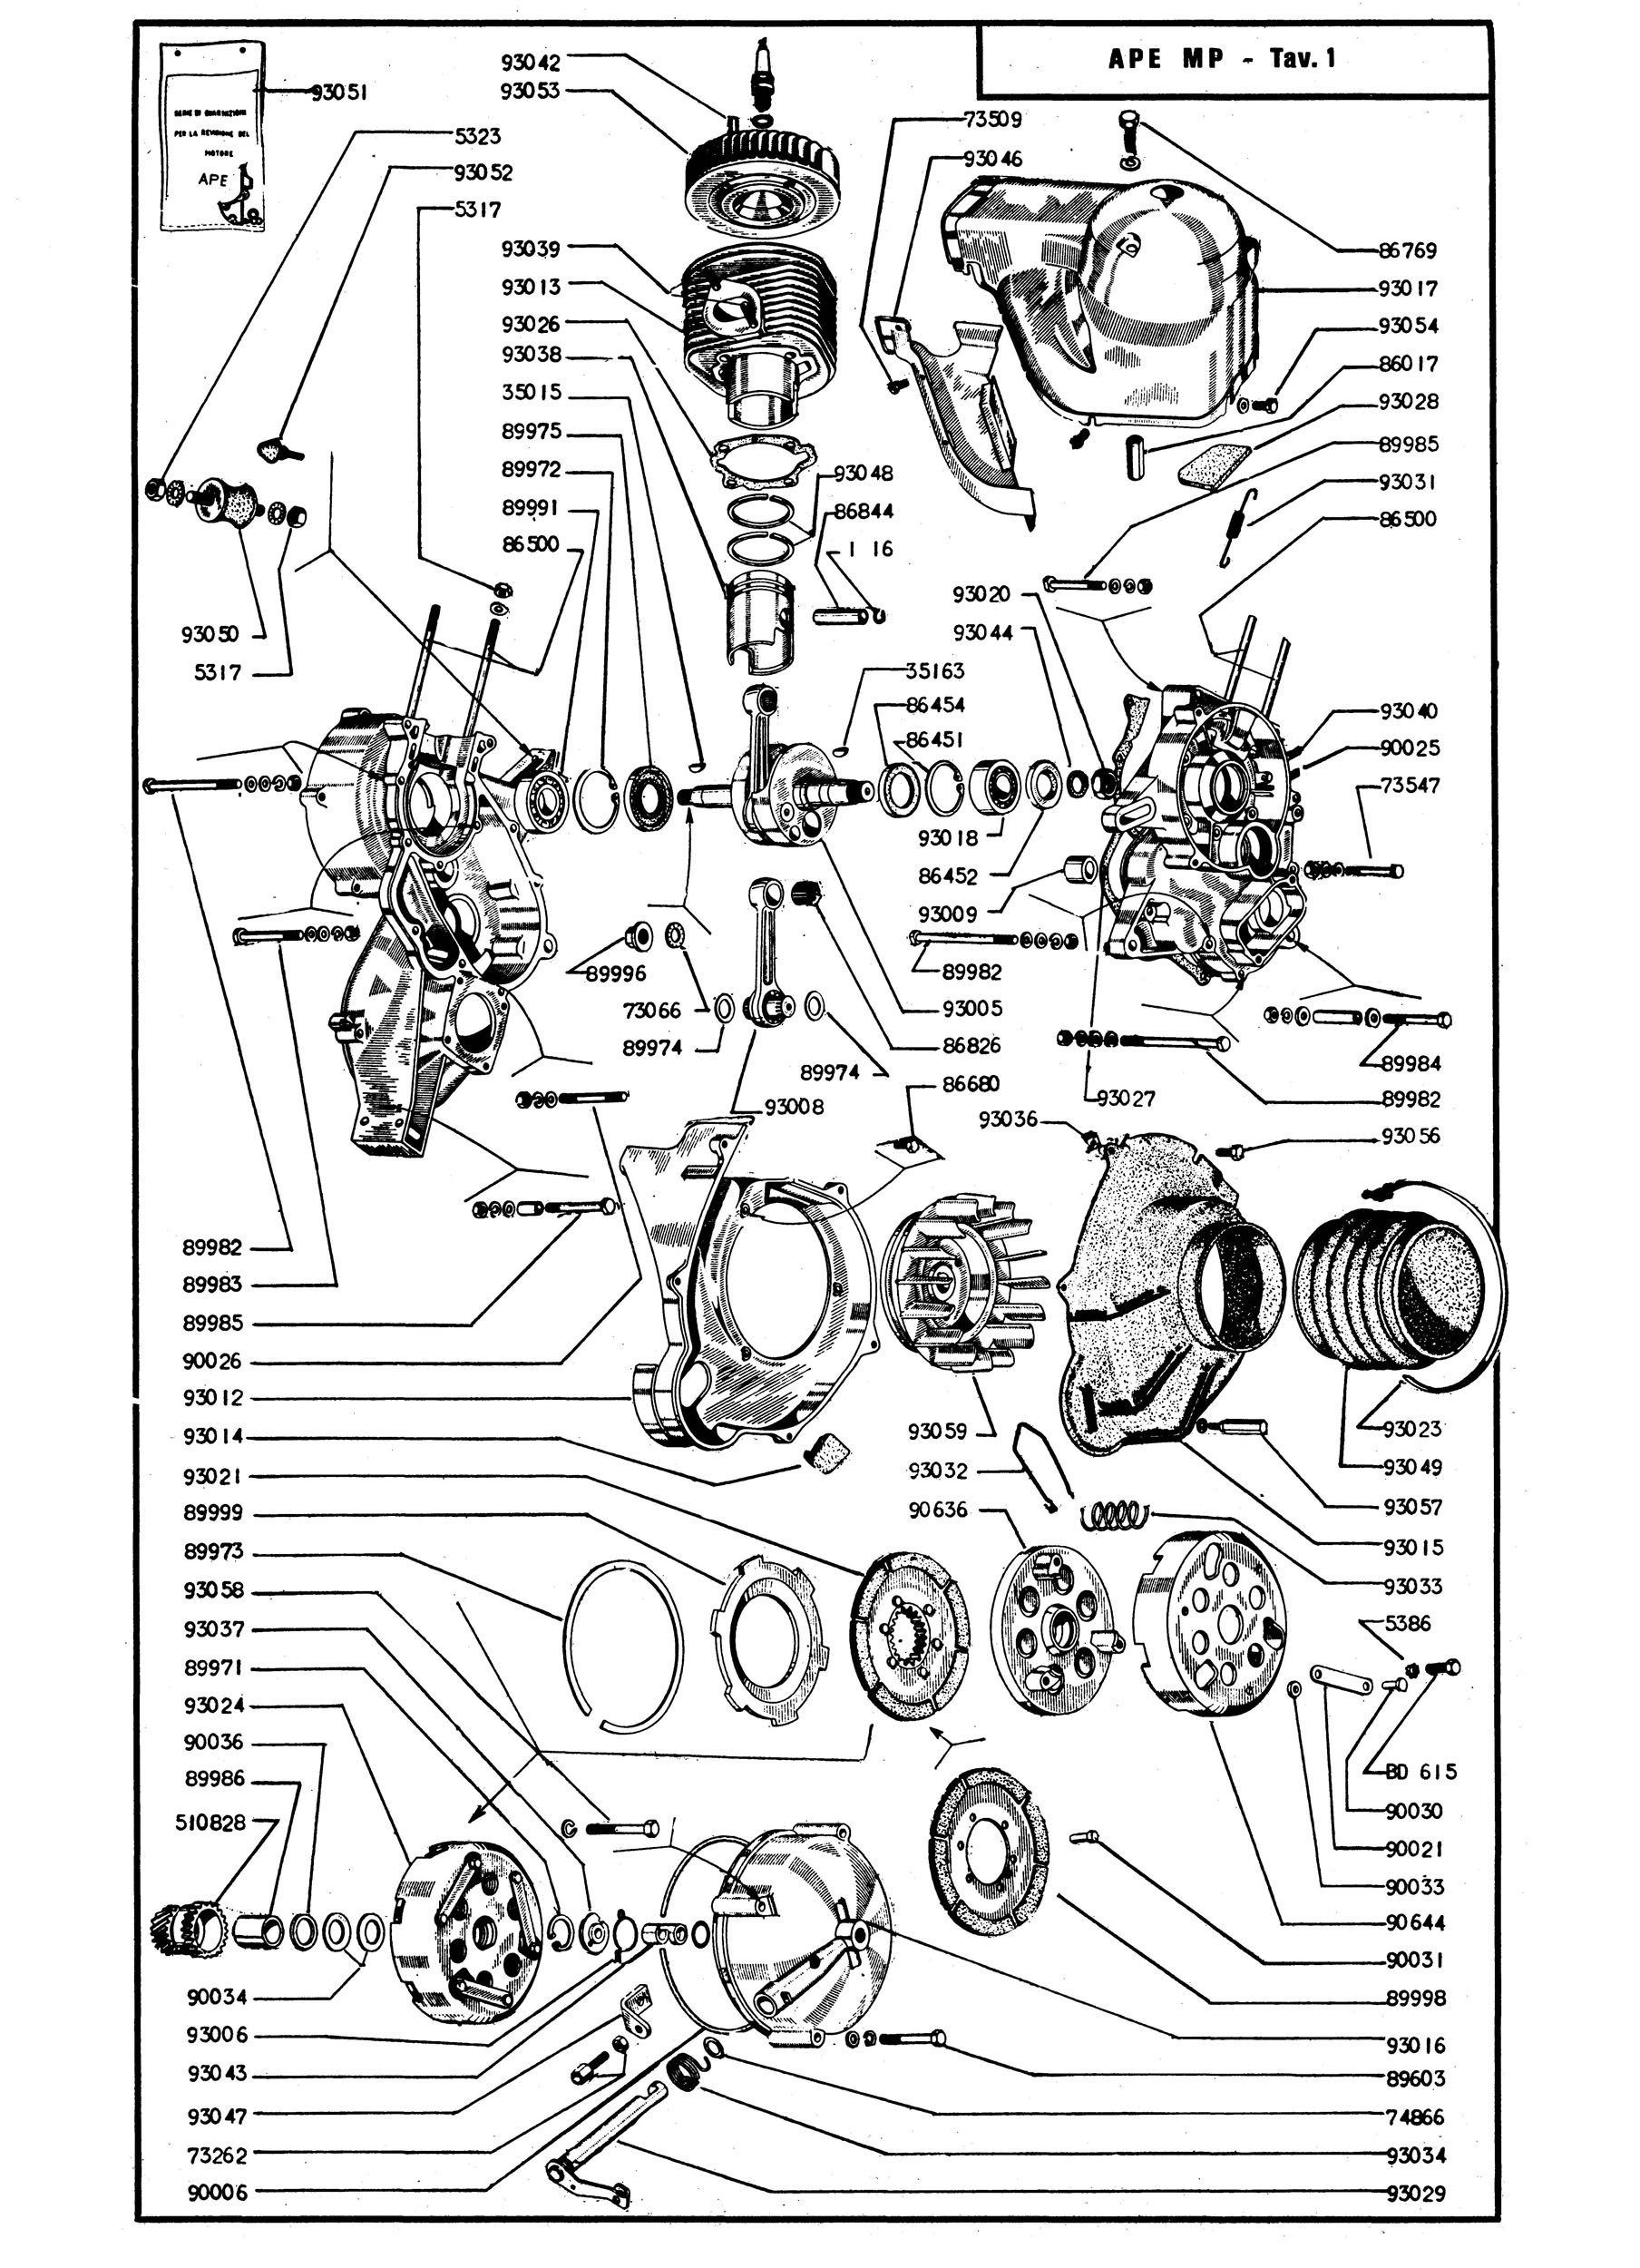 Piaggio Parts Catalog